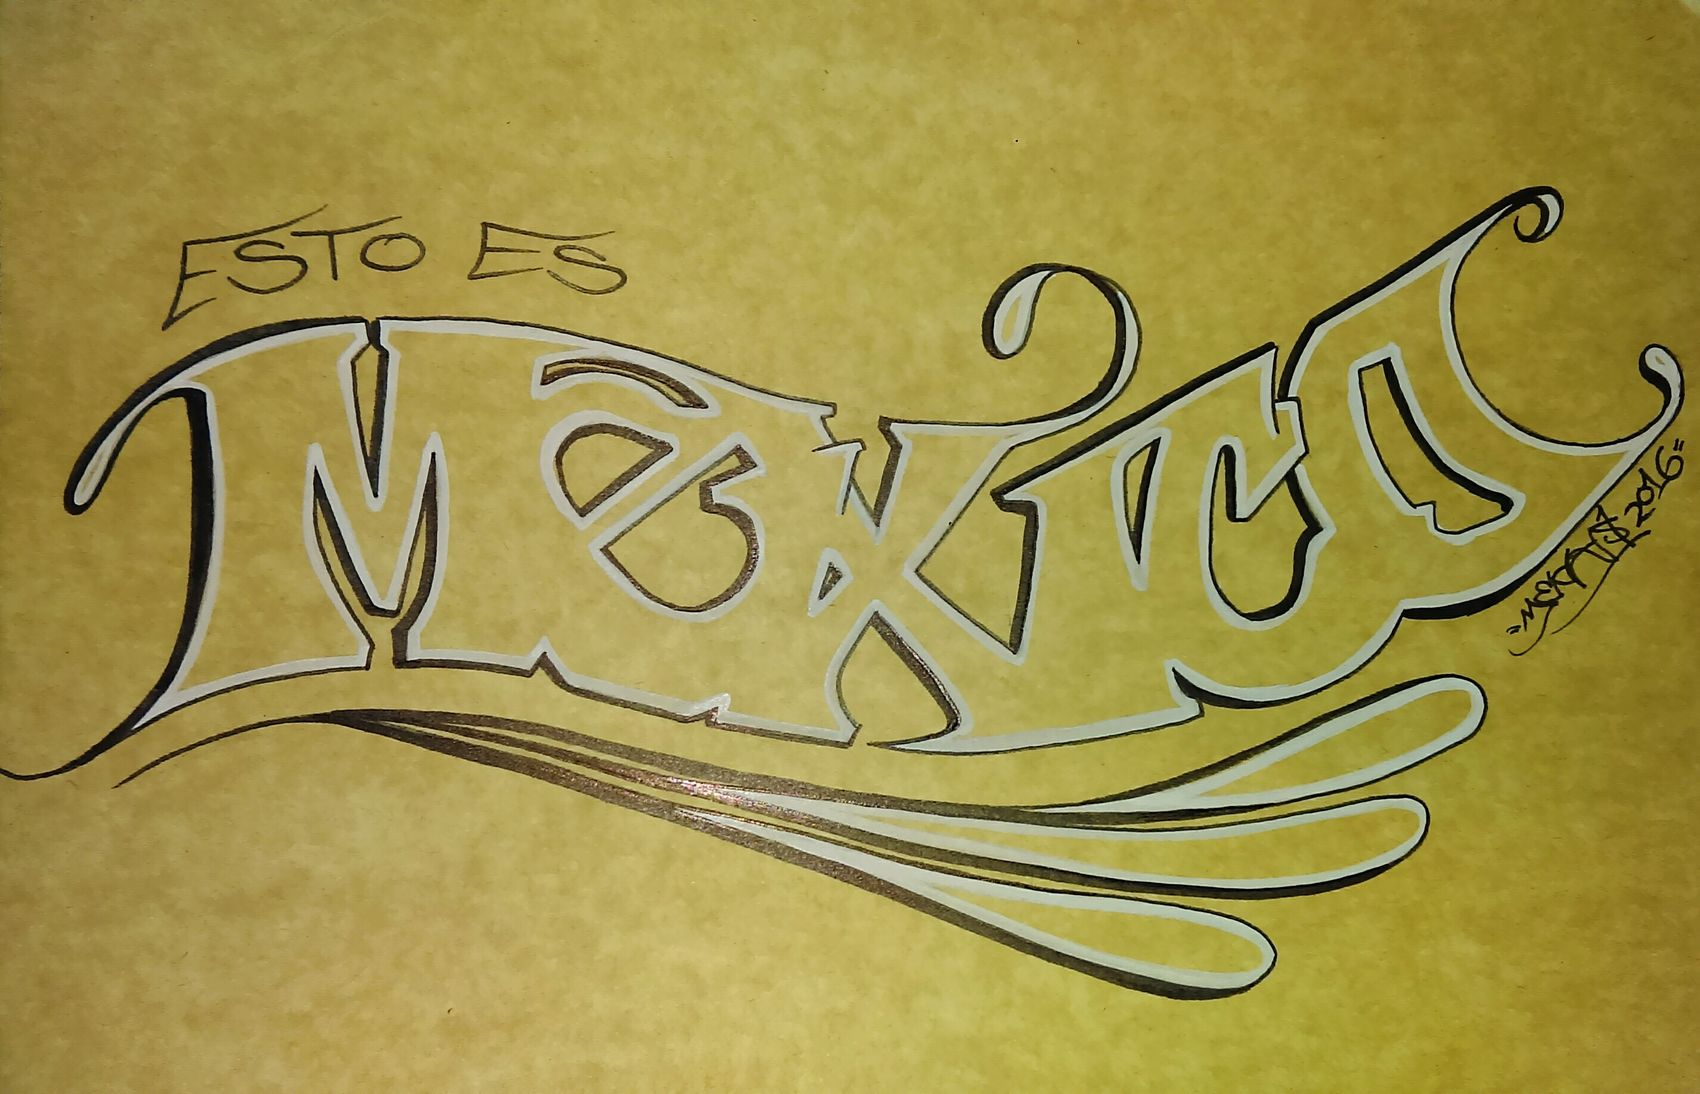 Esto es Mexico. Mexico Estoesmexico Lettering Graffitiporn Art, Drawing, Creativity Sharpie Art Graffiti Blackbook Typographyinspired Mecks1 Graffiti Art Typography Notes From The Underground Typograffiti Type Sharpie Artsy Graffiti Art Graffiti Writers Sinful El Pecador La Plaga Mexico_maravilloso Mexicourbano